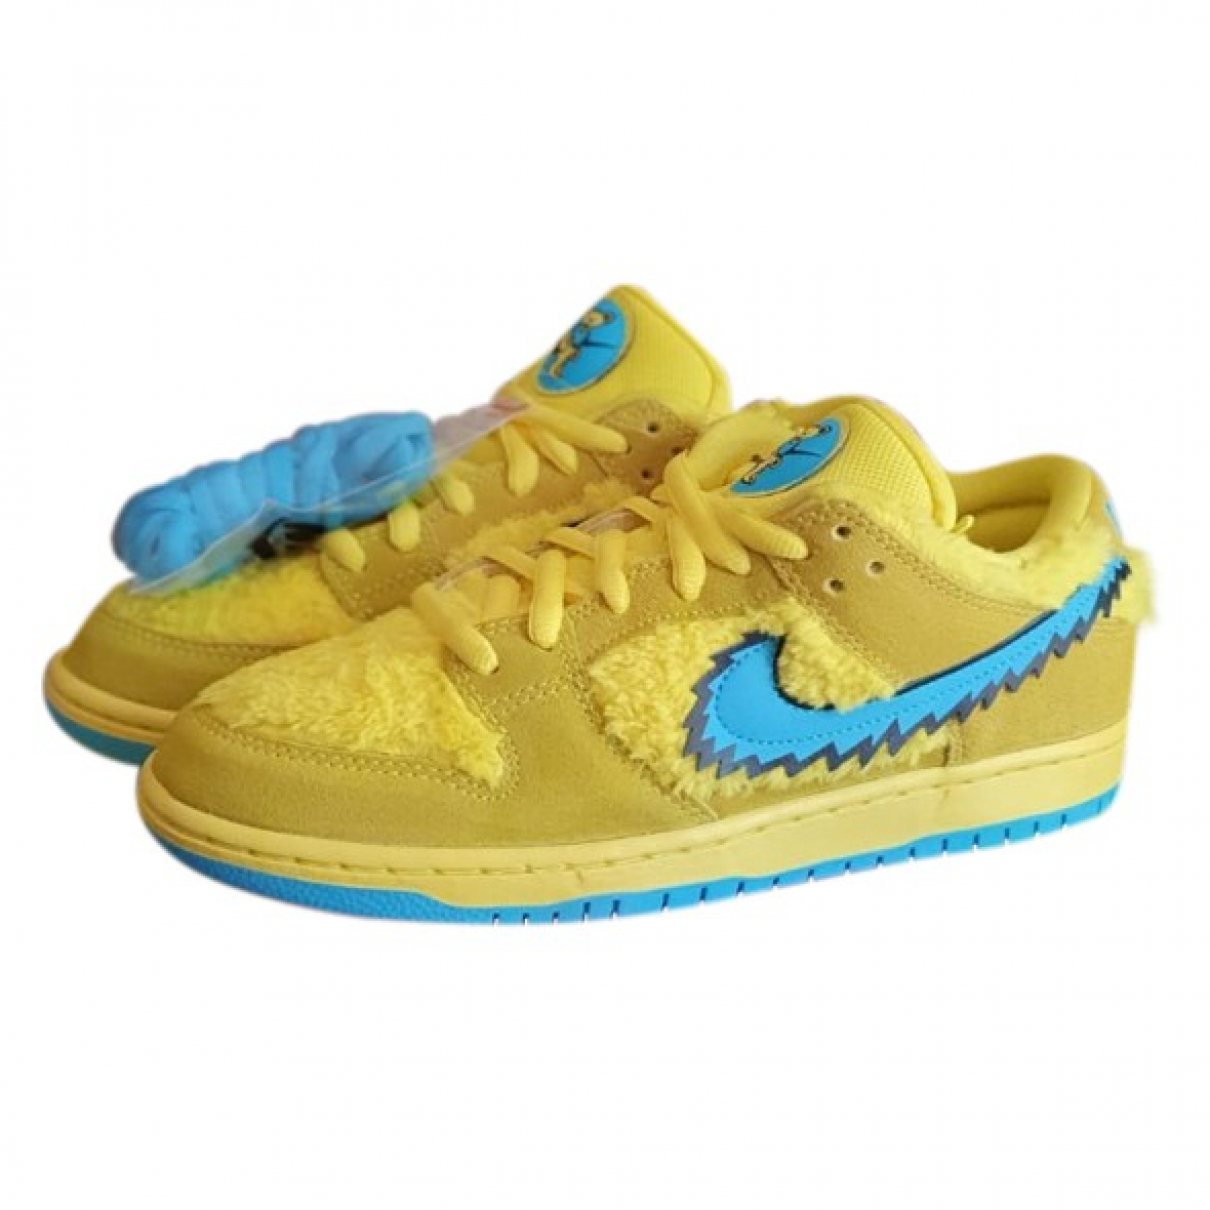 Nike SB Dunk  Yellow Leather Trainers for Men 9 US